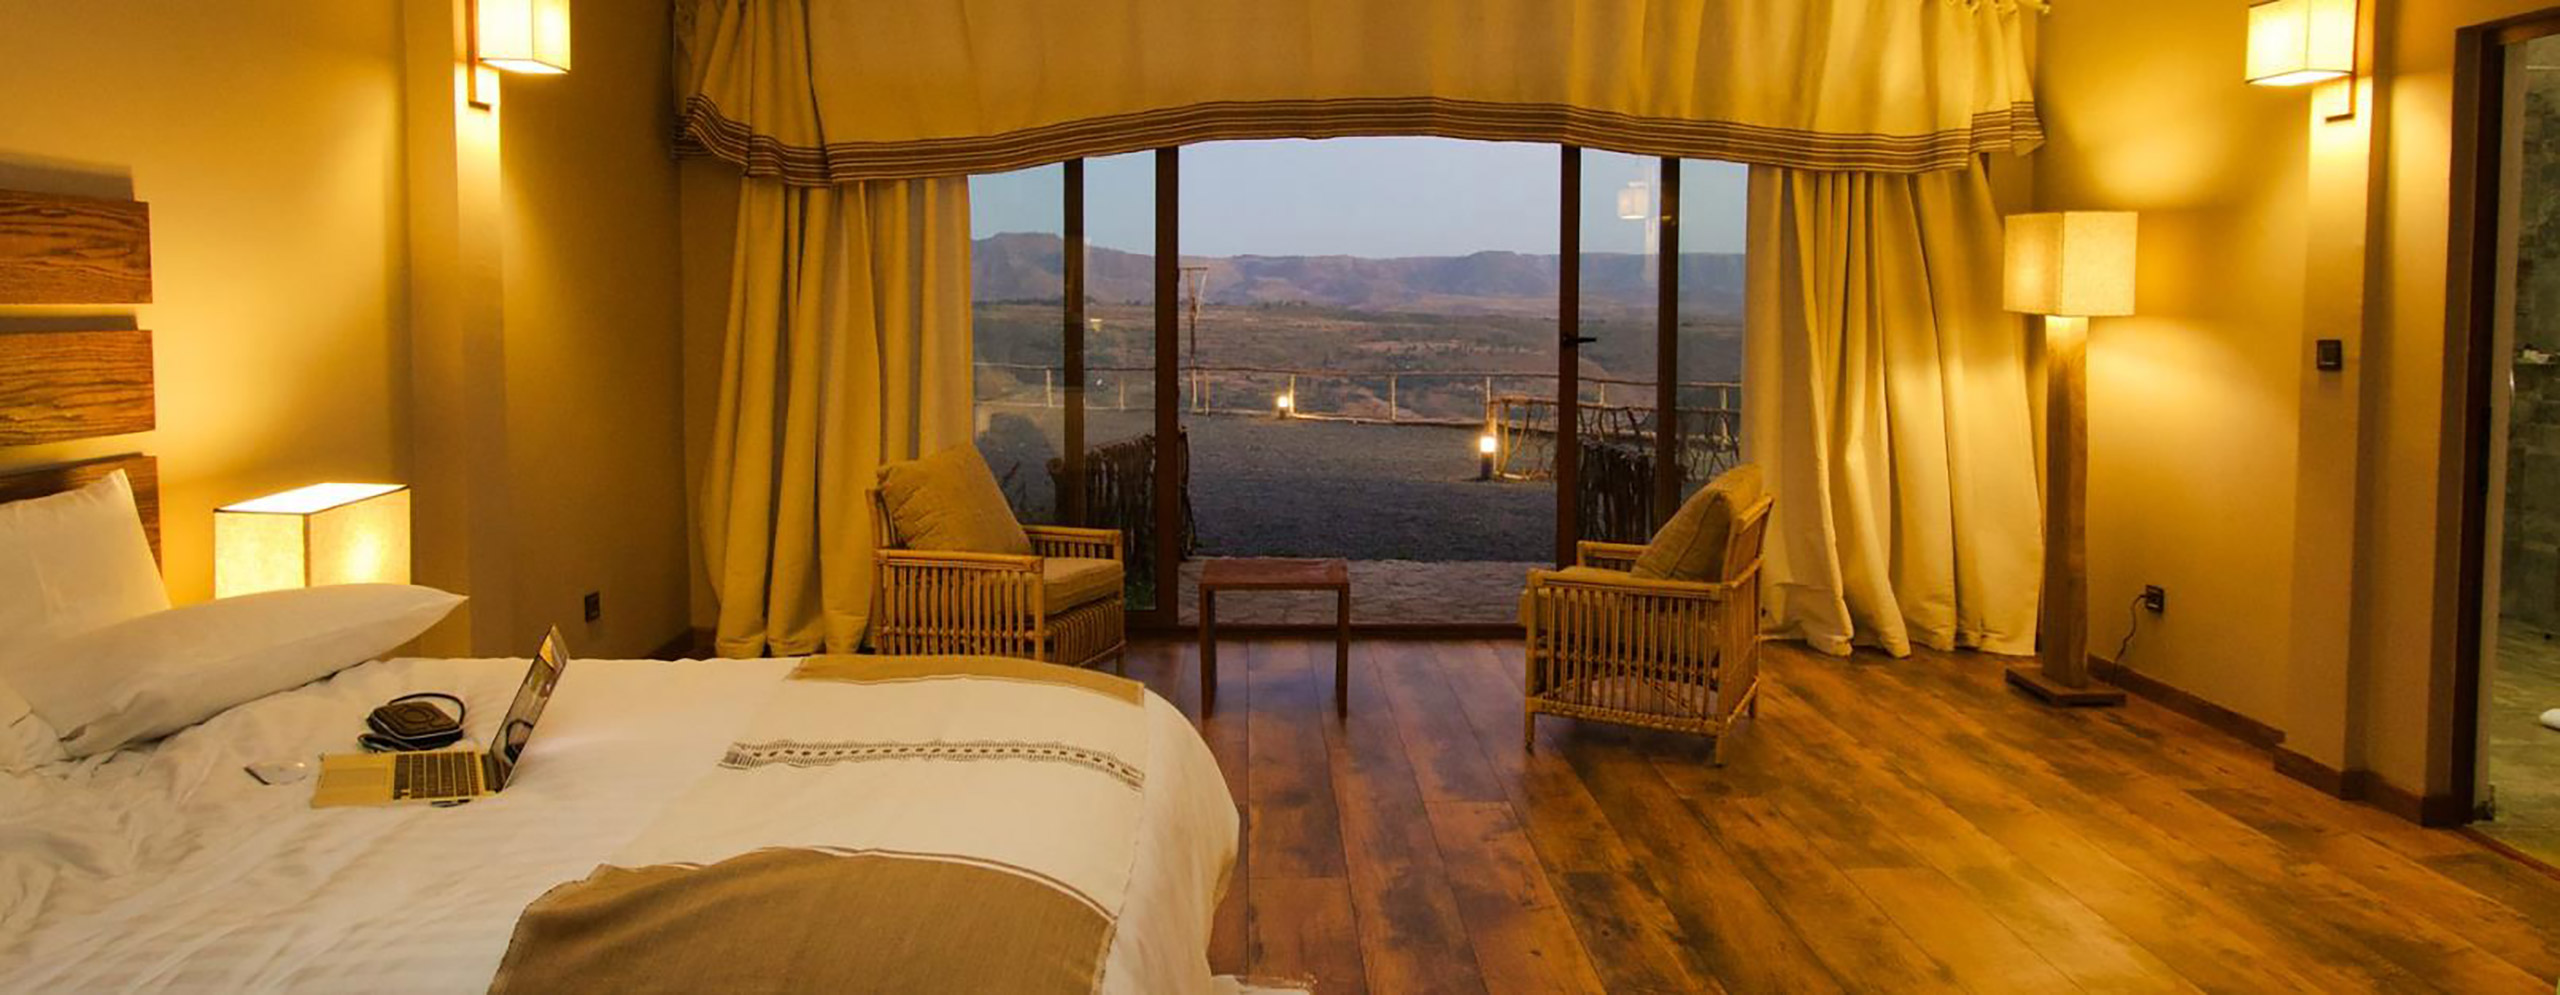 Room at Gondar Hills Hotel with a spectacular view of Gondar Ethiopia through the wall to wall windows.